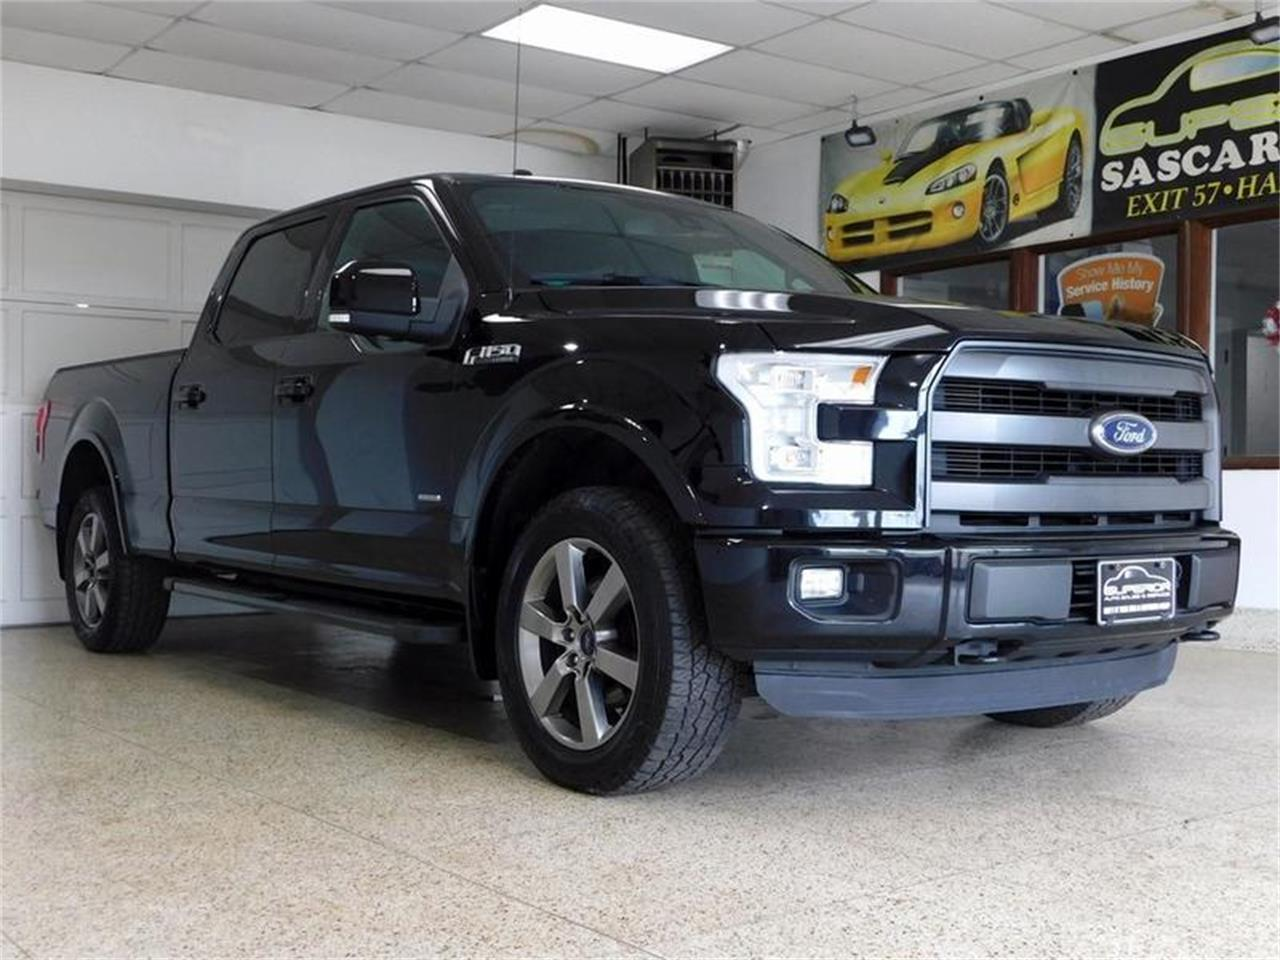 2016 Ford F150 (CC-1219120) for sale in Hamburg, New York